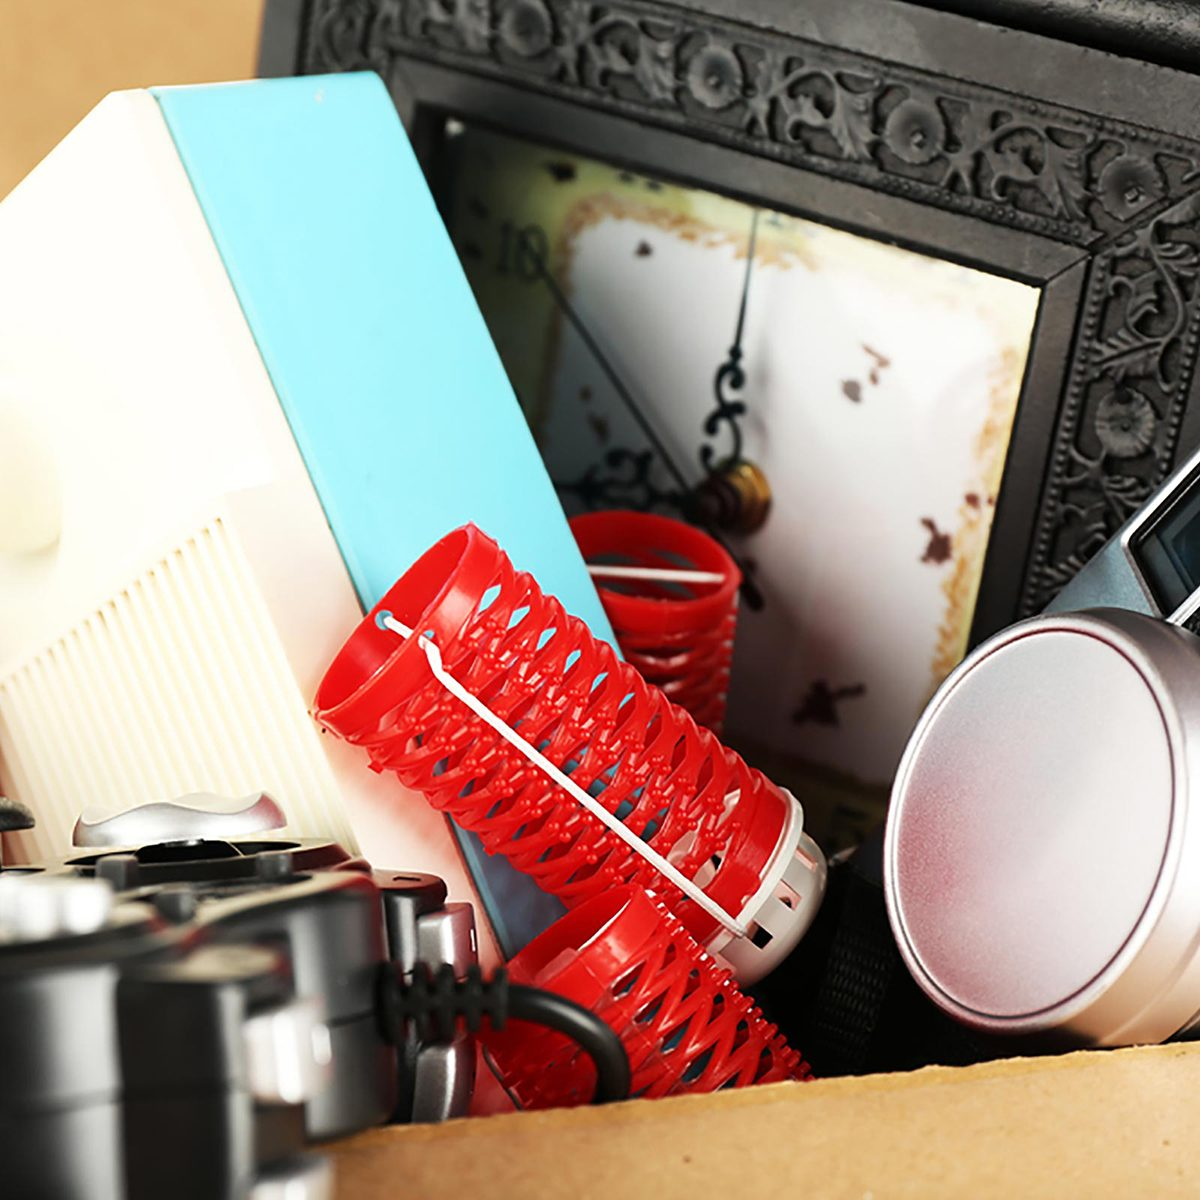 8 Common Items to Avoid If You Want to Have a Clutter-Free Home